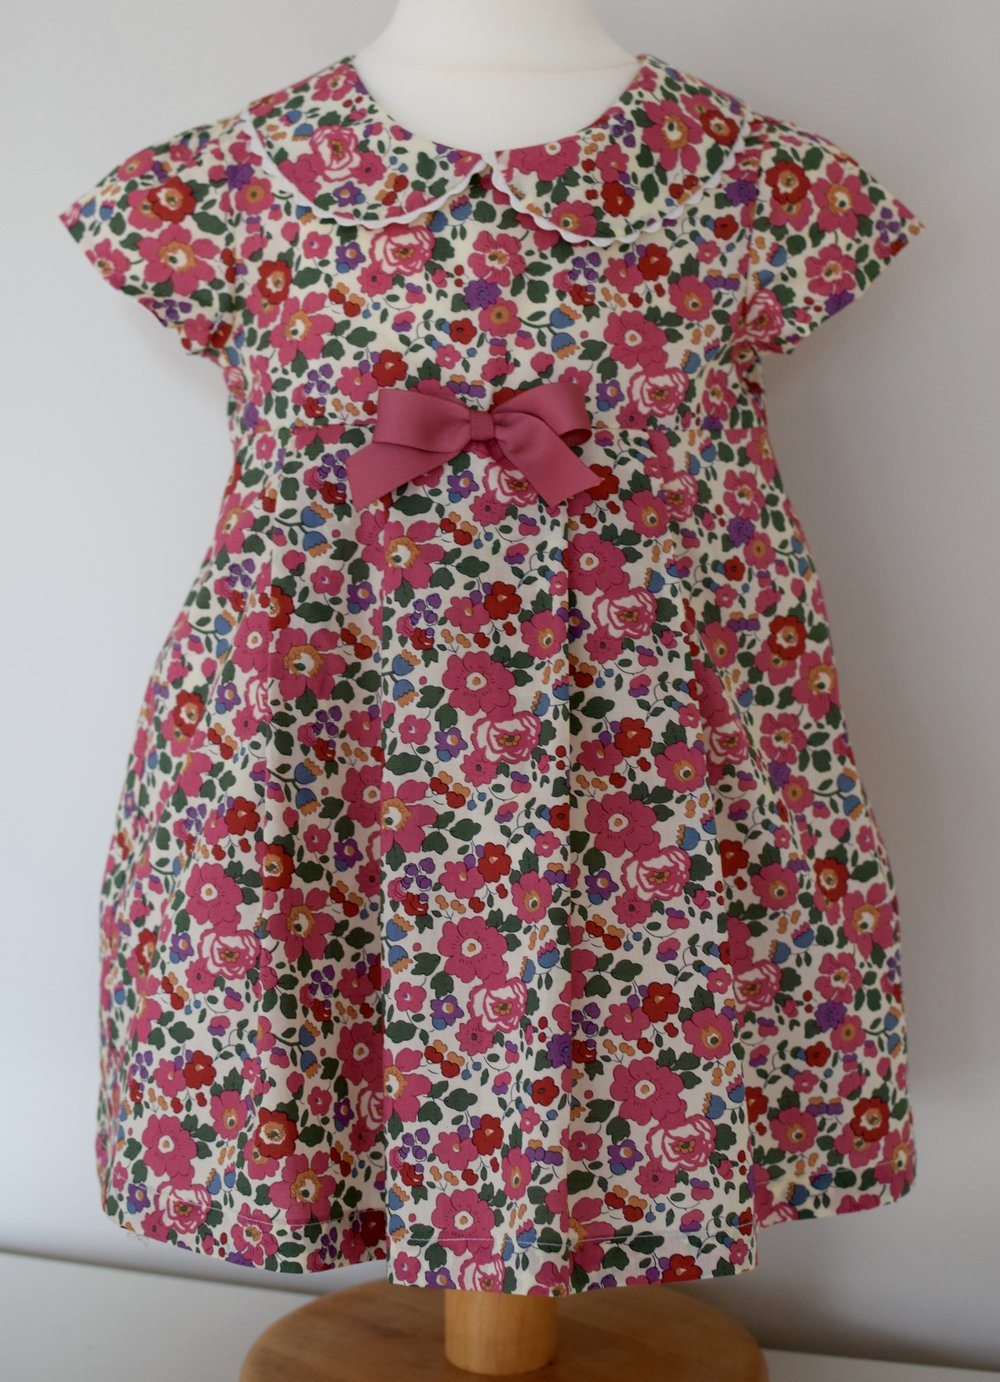 Betsy party dress   A very pretty Liberty print dress with a matching Peter Pan collar trimmed with rick rack ribbon, cap sleeves and a fixed pink grosgrain ribbon. This dress is fully lined with a three button fastening at the back.  Available in sizes 3y, 4y and 5y (SOLD OUT)  From £40